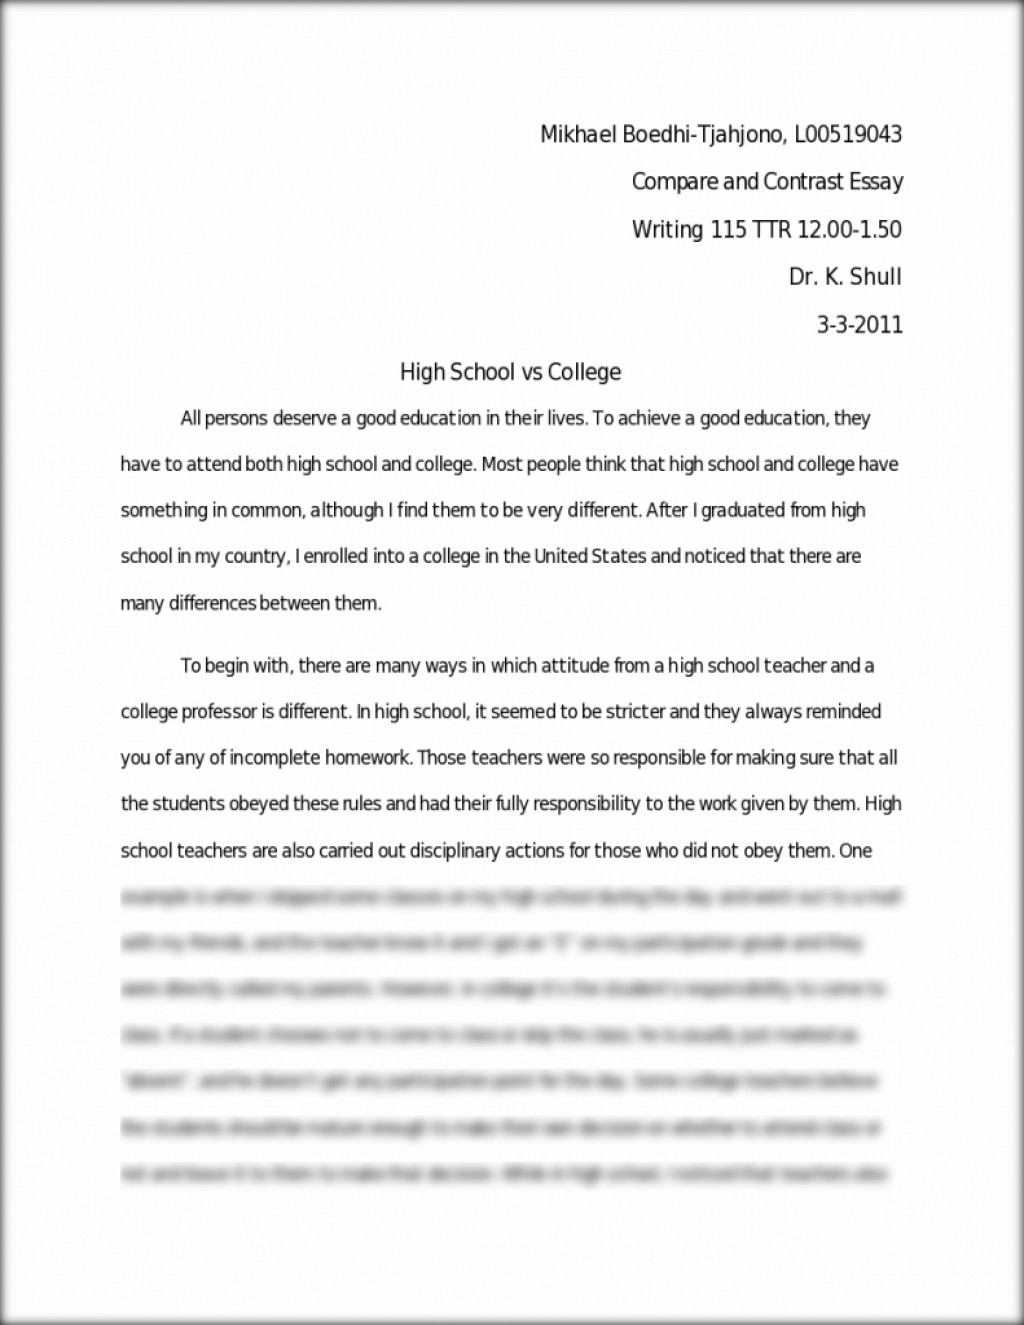 009 Compare Essay Contrast High School Vs College Practice Makes Coursework Academic And Comparison Life Beautiful Topics Ielts Examples Middle Large